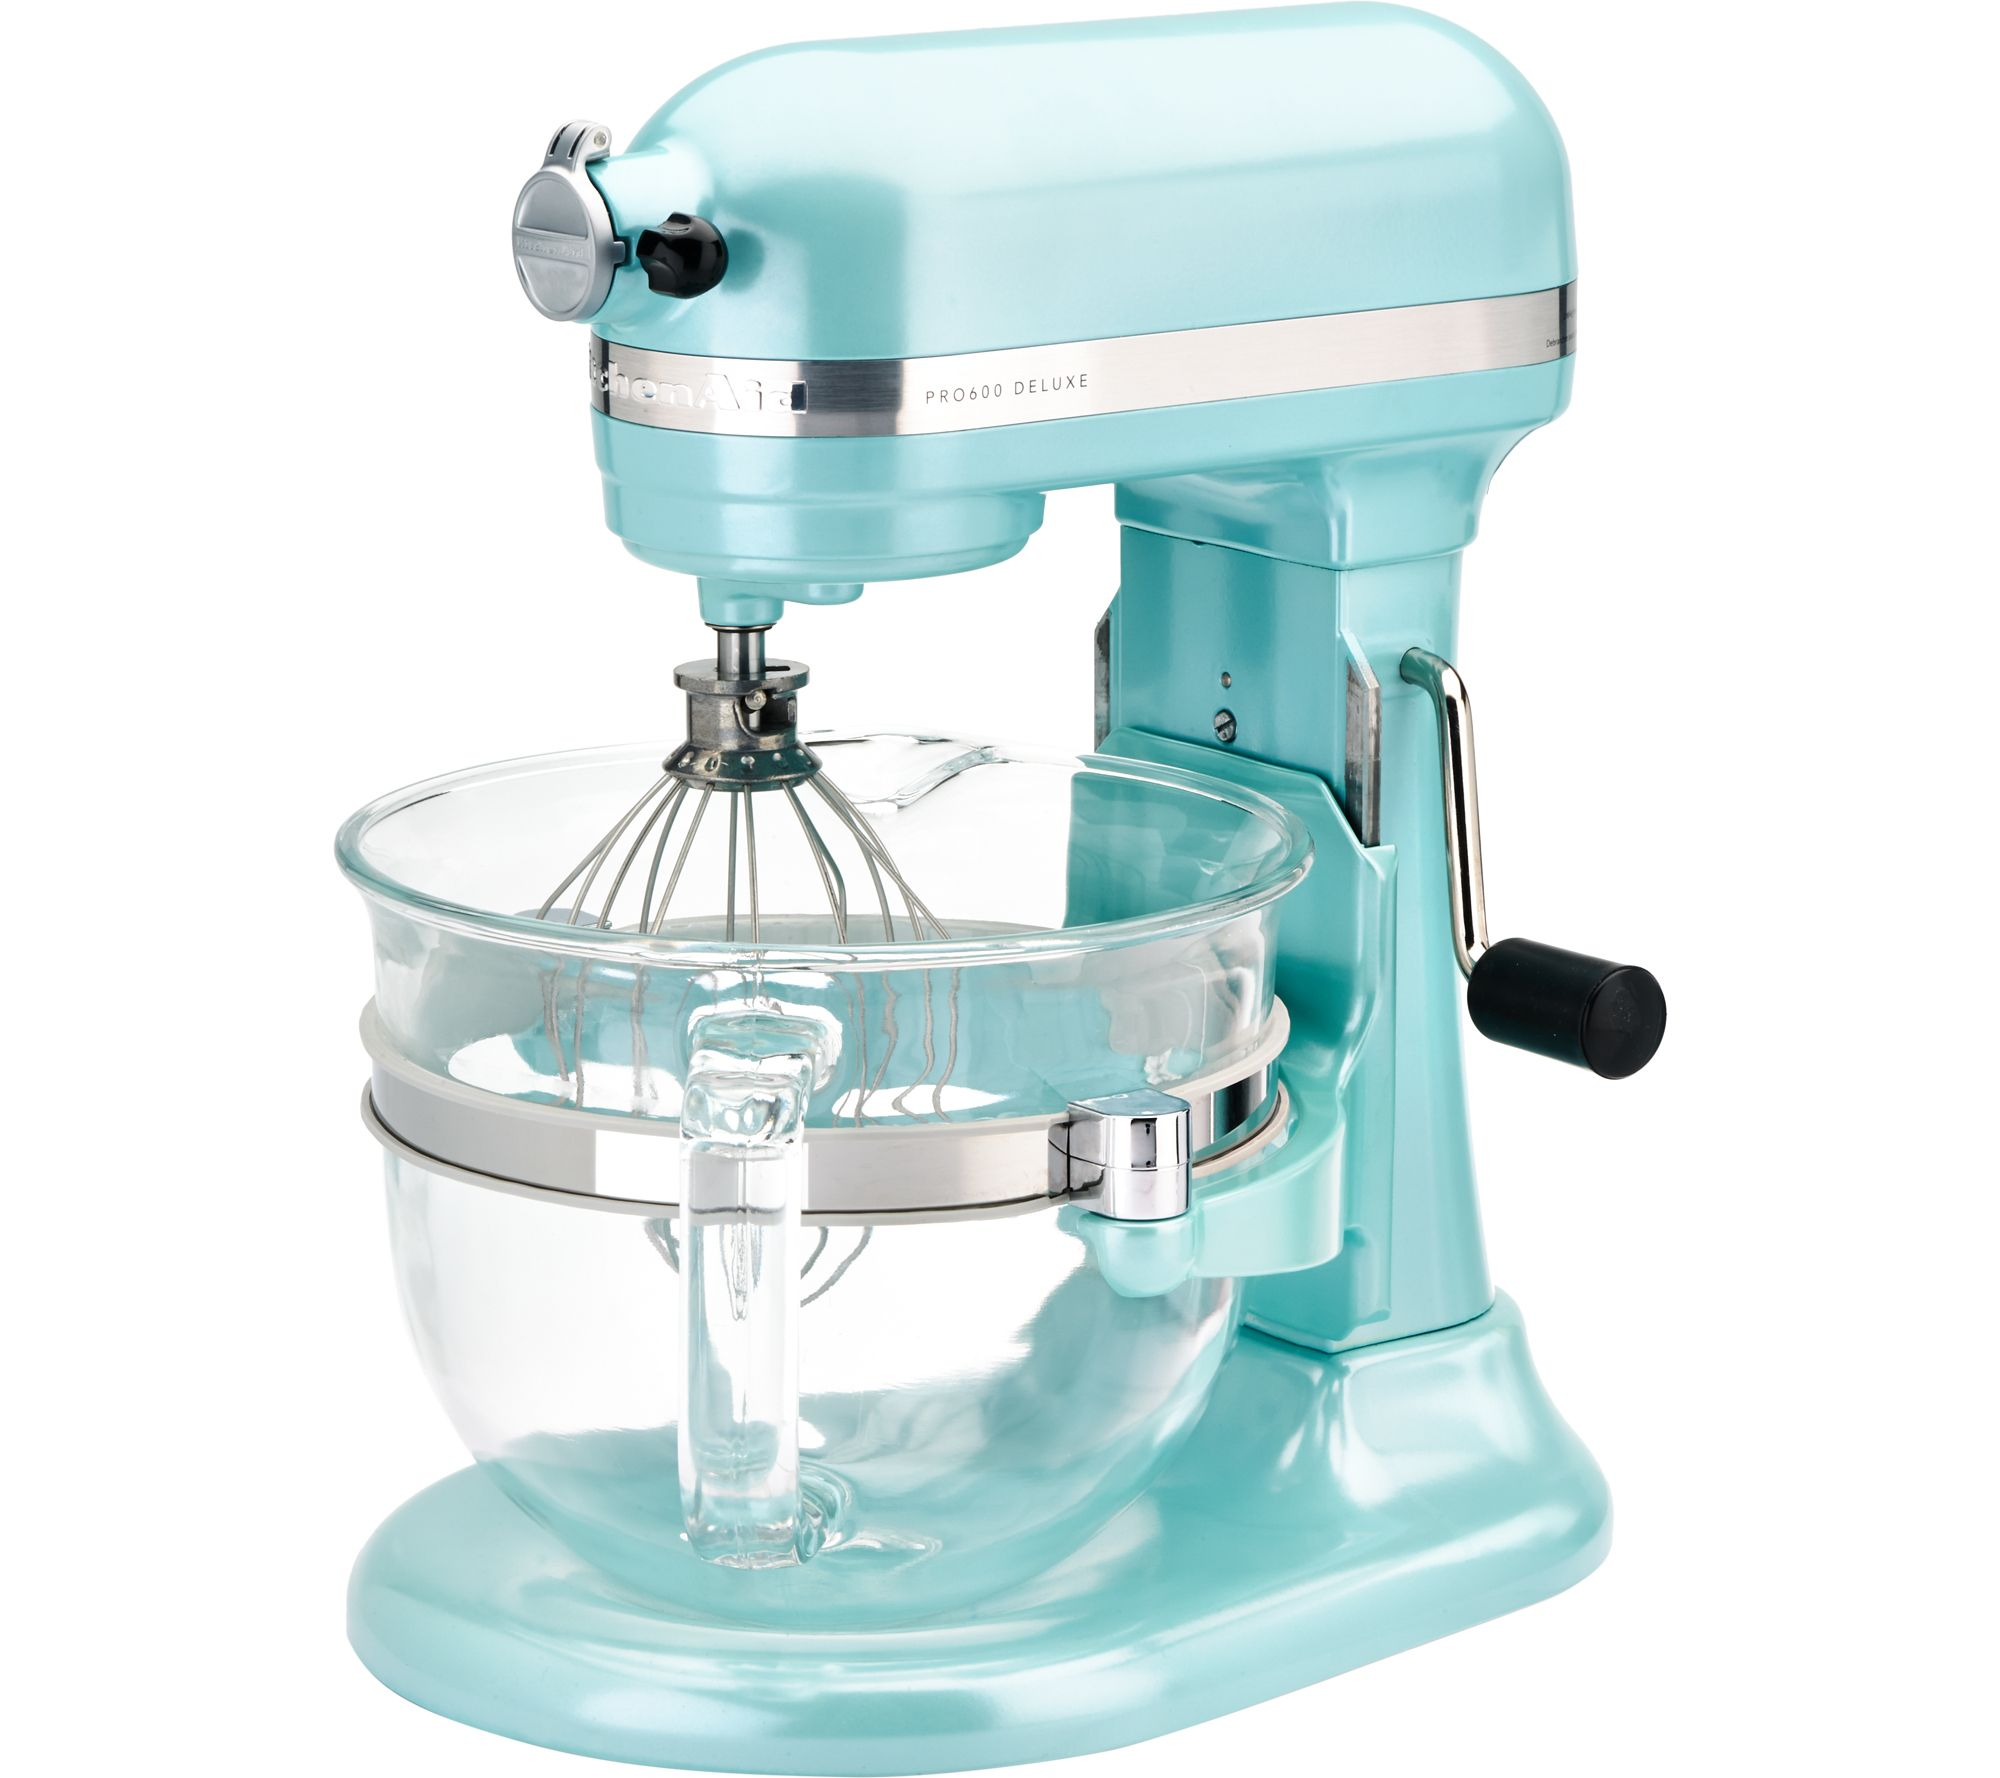 KitchenAid 6-qt 575 Watt Glass Bowl Lift Stand Mixer w/ Flex Edge ...